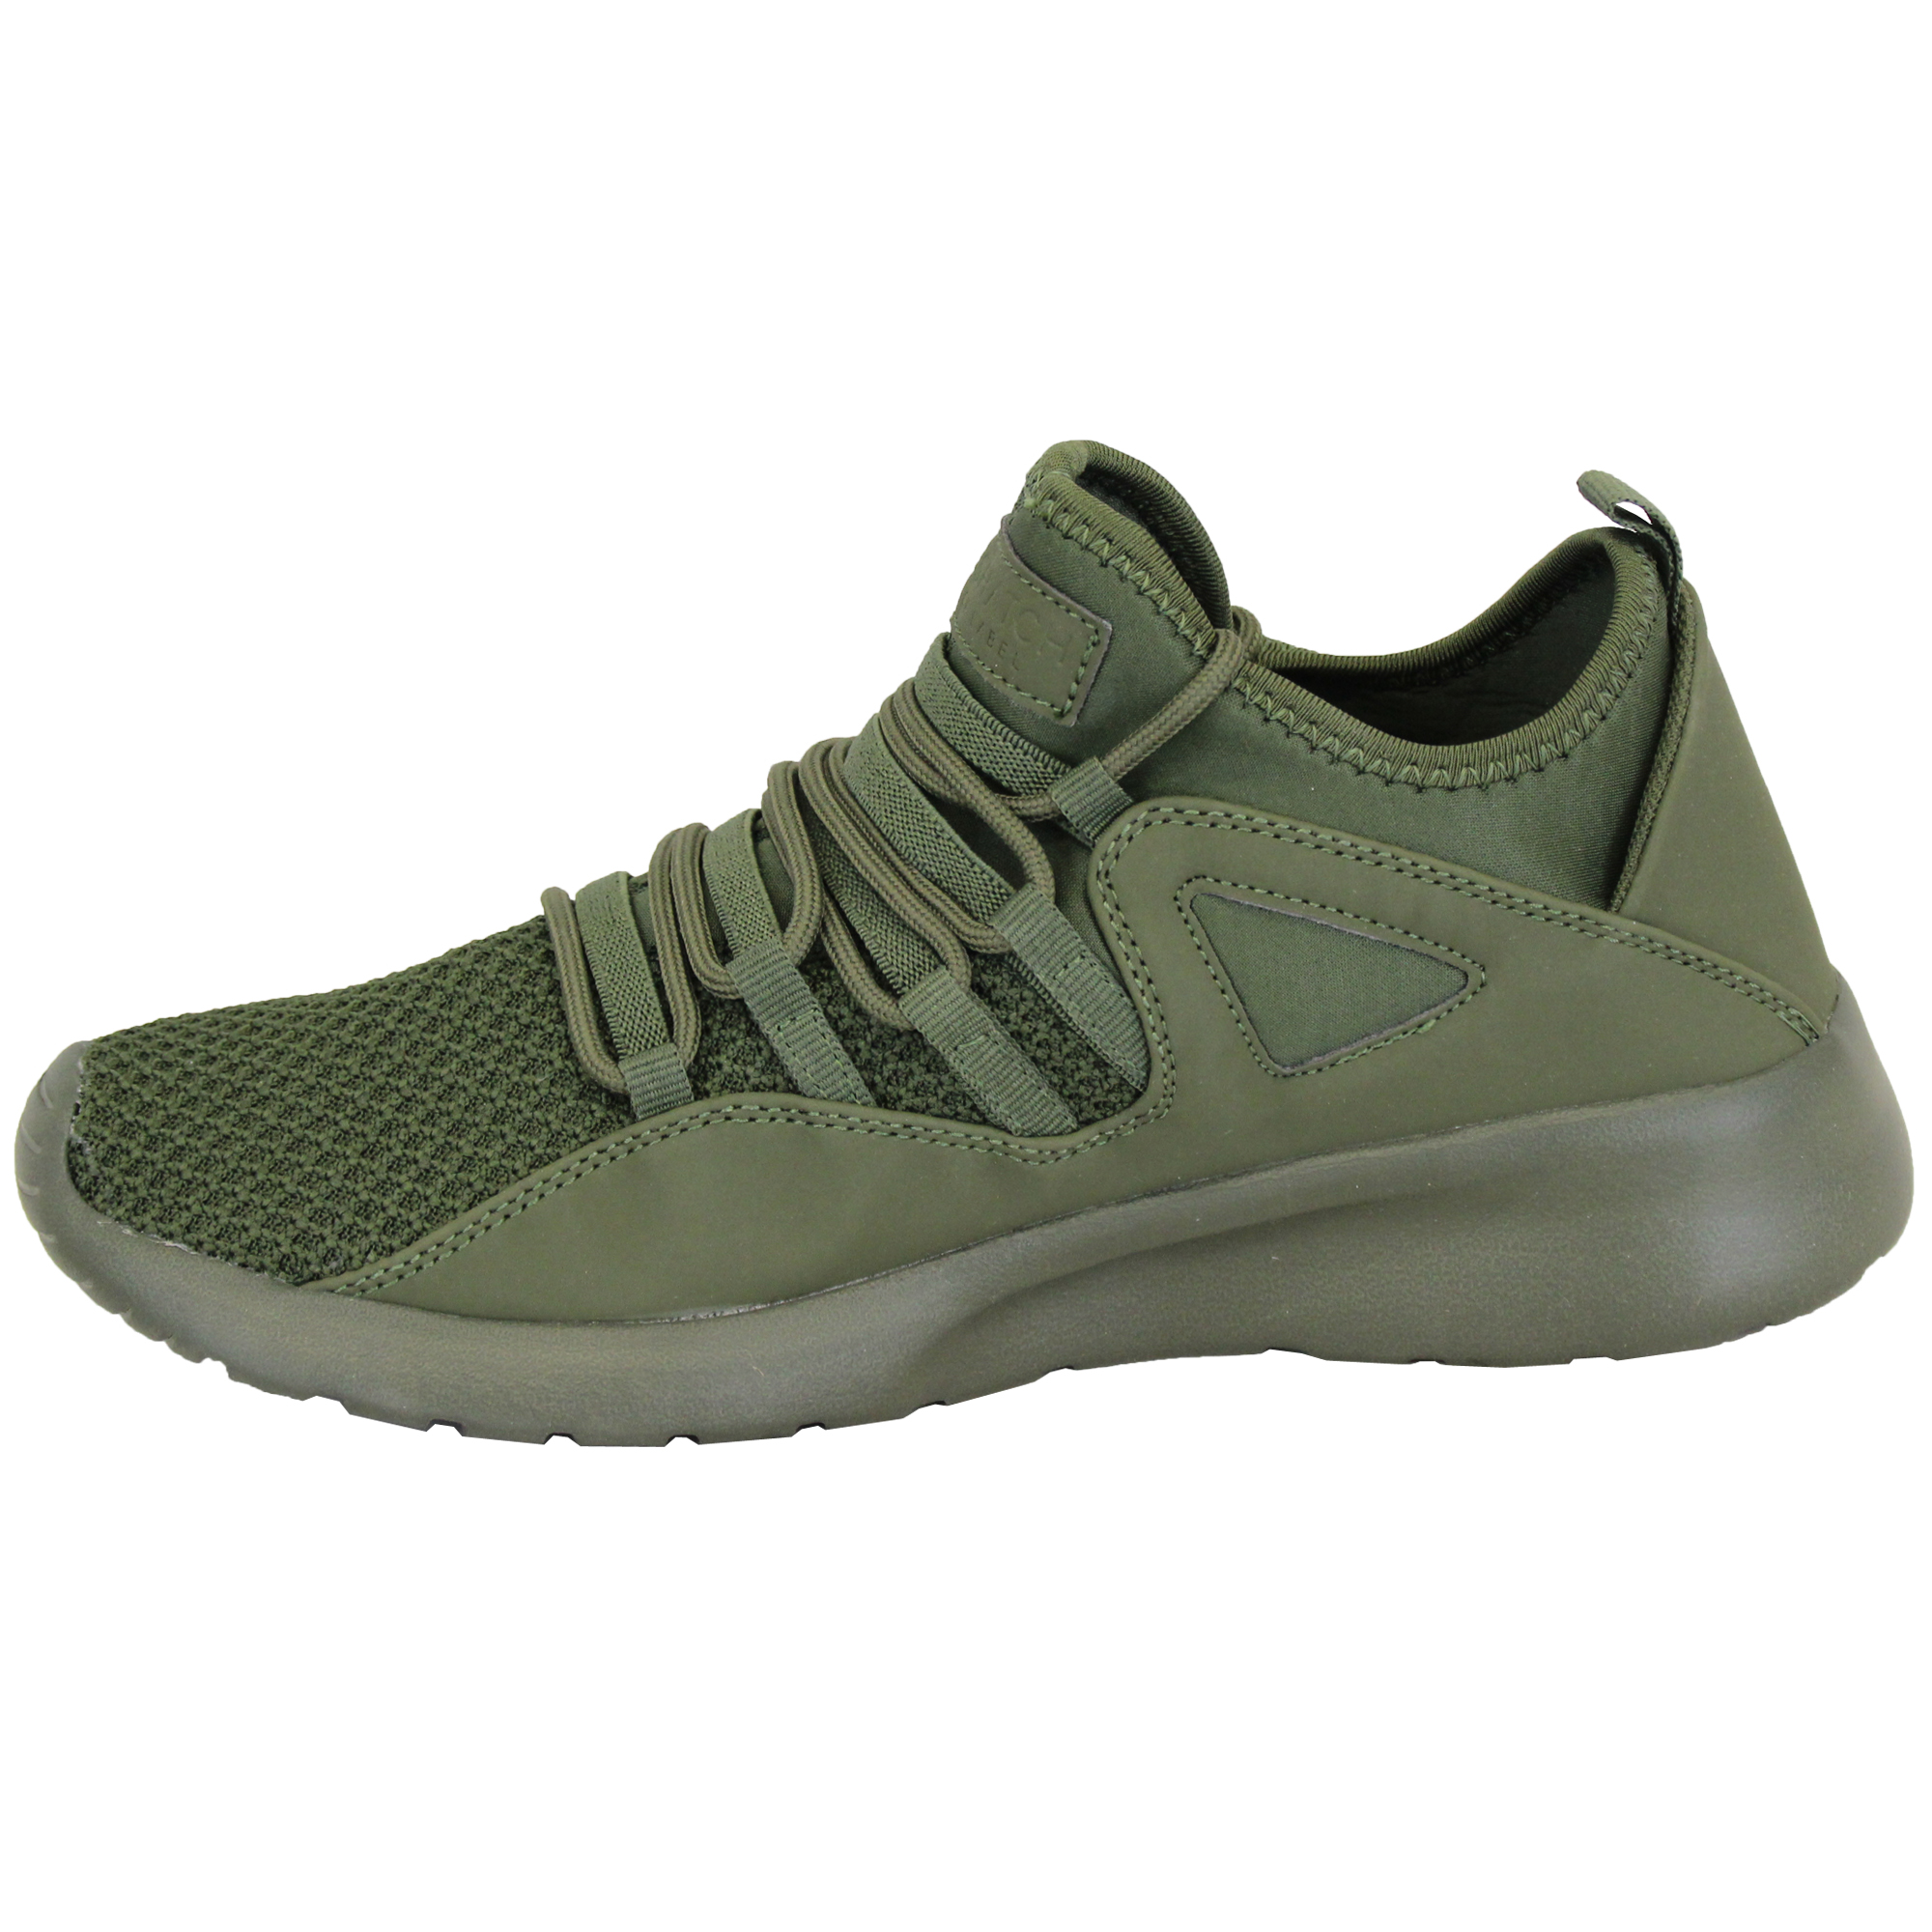 Mens-Trainers-Crosshatch-Running-Speed-Lace-Up-Sneakers-Sports-Gym-Casual-Shoes thumbnail 7